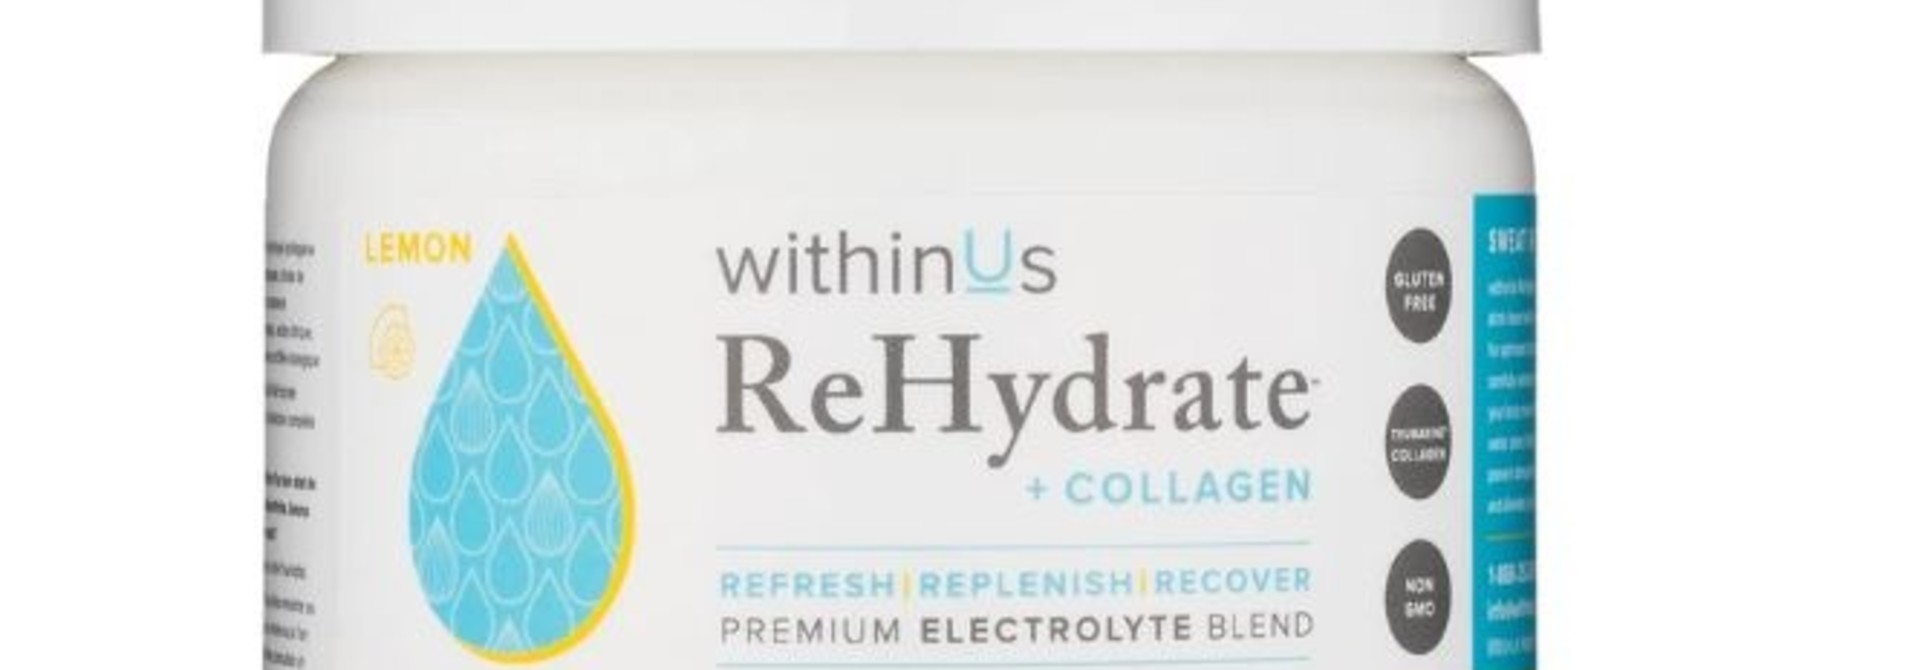 ReHydrate + Collagen - Lemon